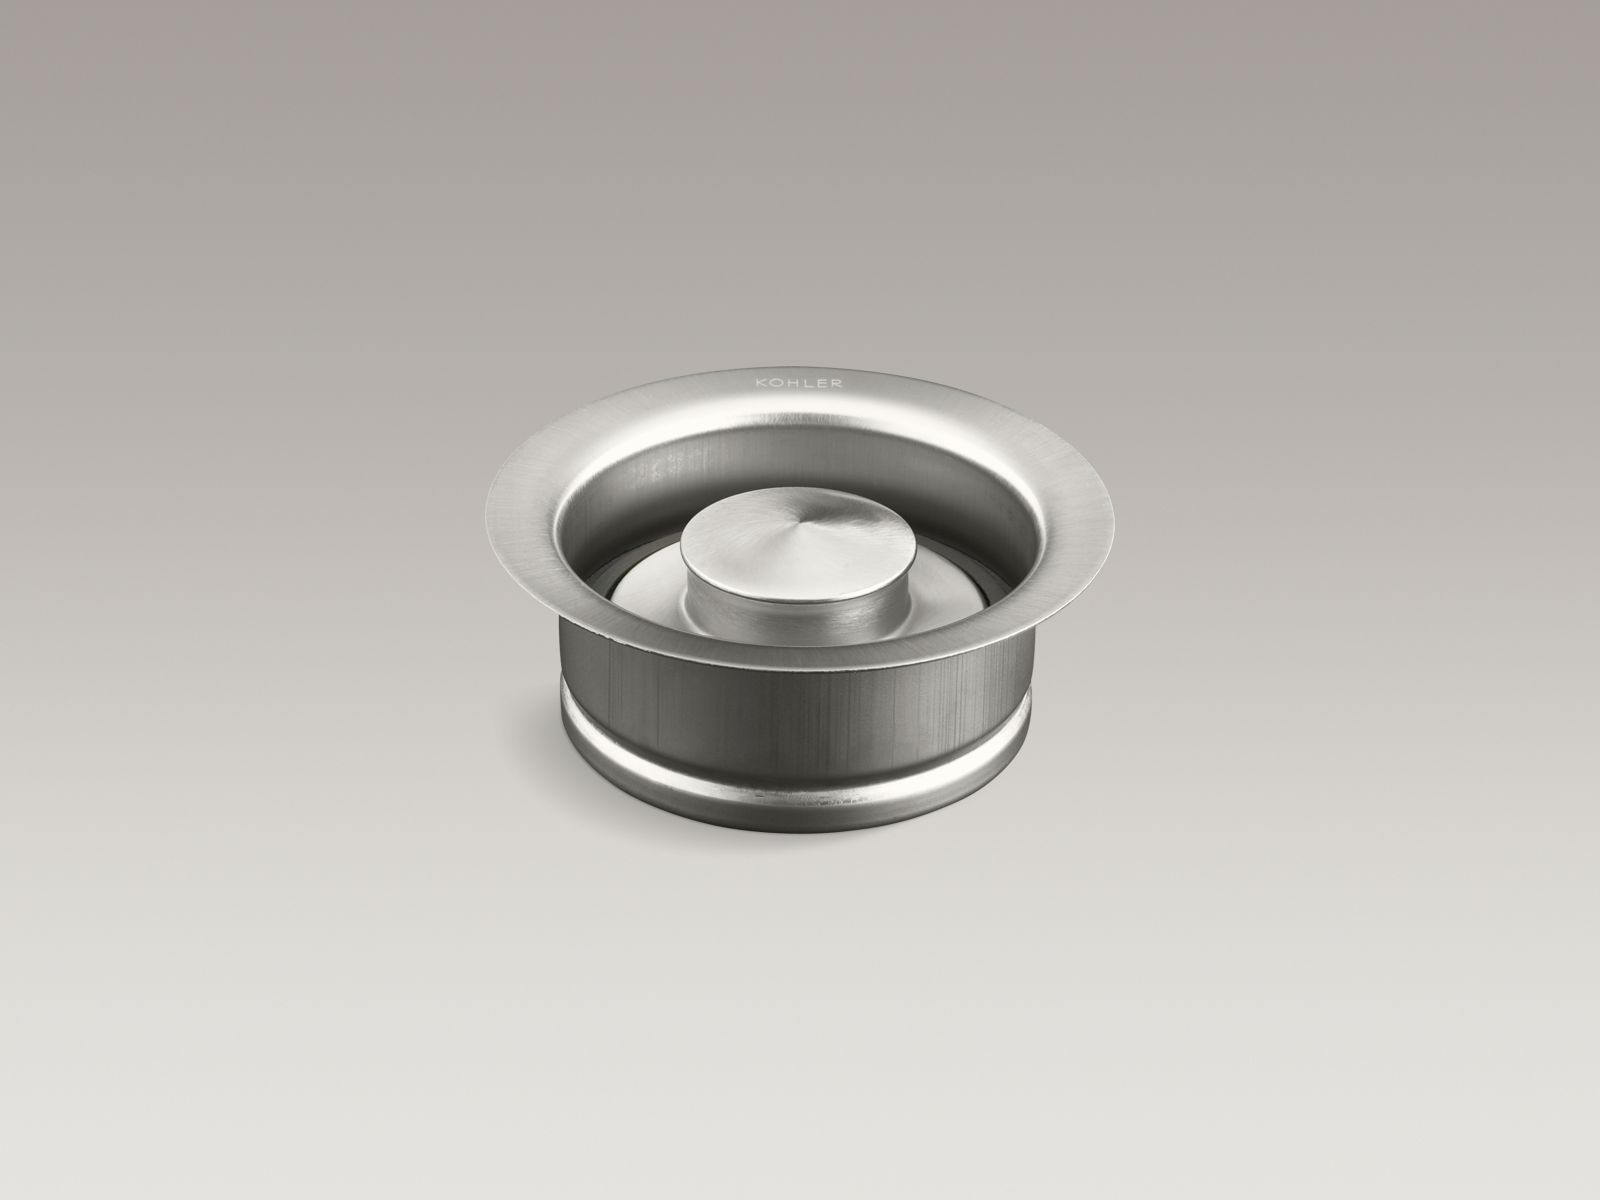 Kohler K-11352-BS Garbage Disposal Flange with Stopper Brushed Stainless